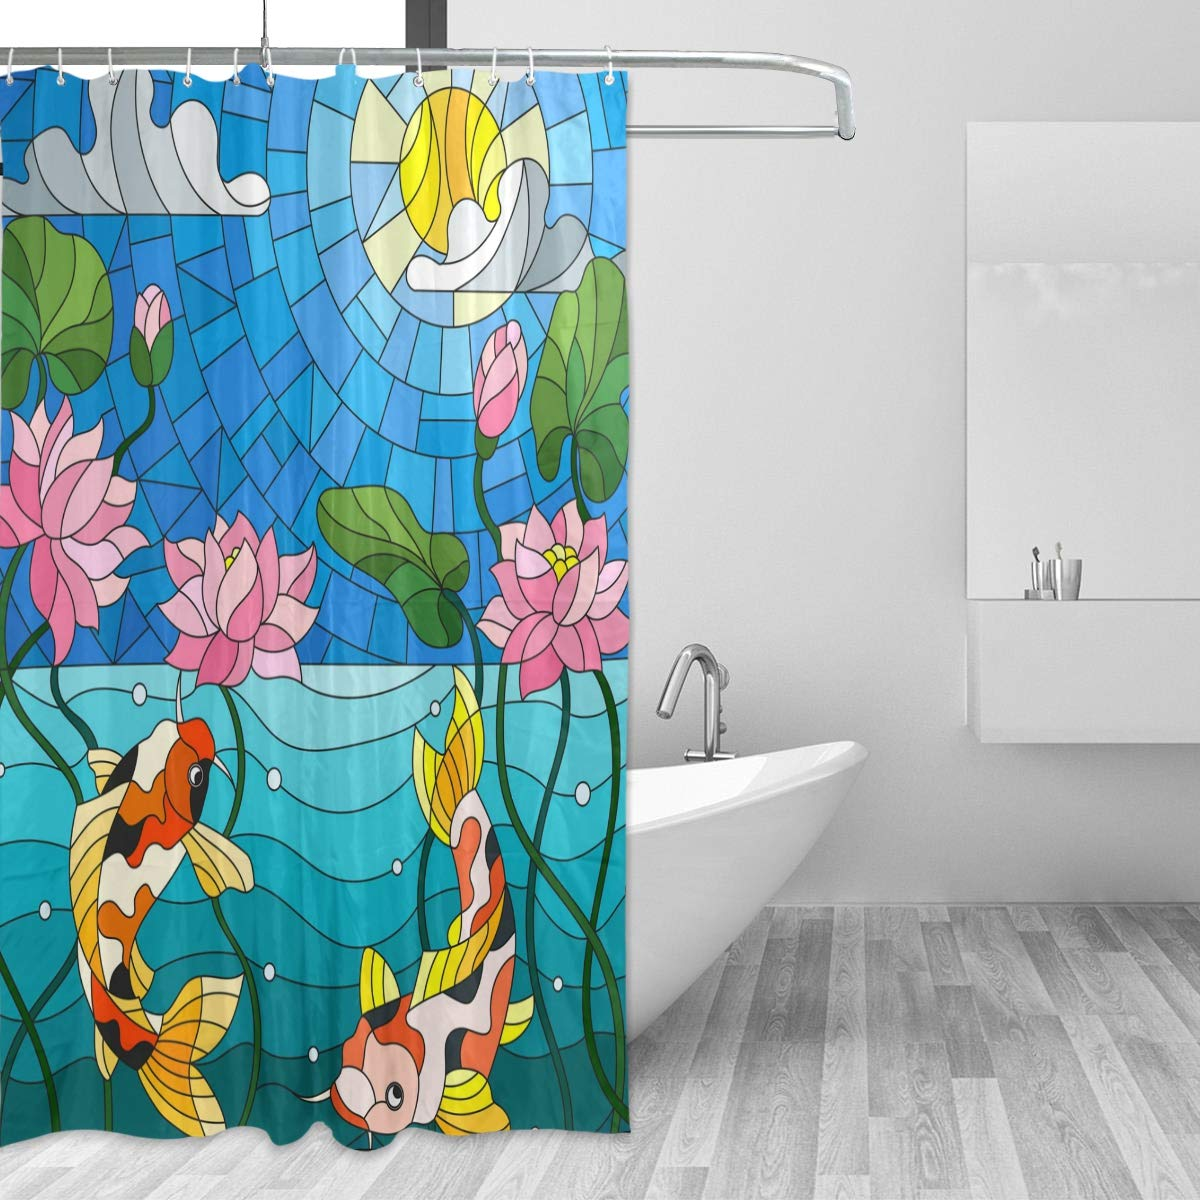 Aquarium Shower CurtainFriendly Sea Animals Tropical Aquatic Habitat Collection Seahorse Crab OctopusFabric Bathroom Decor Set With Hooks